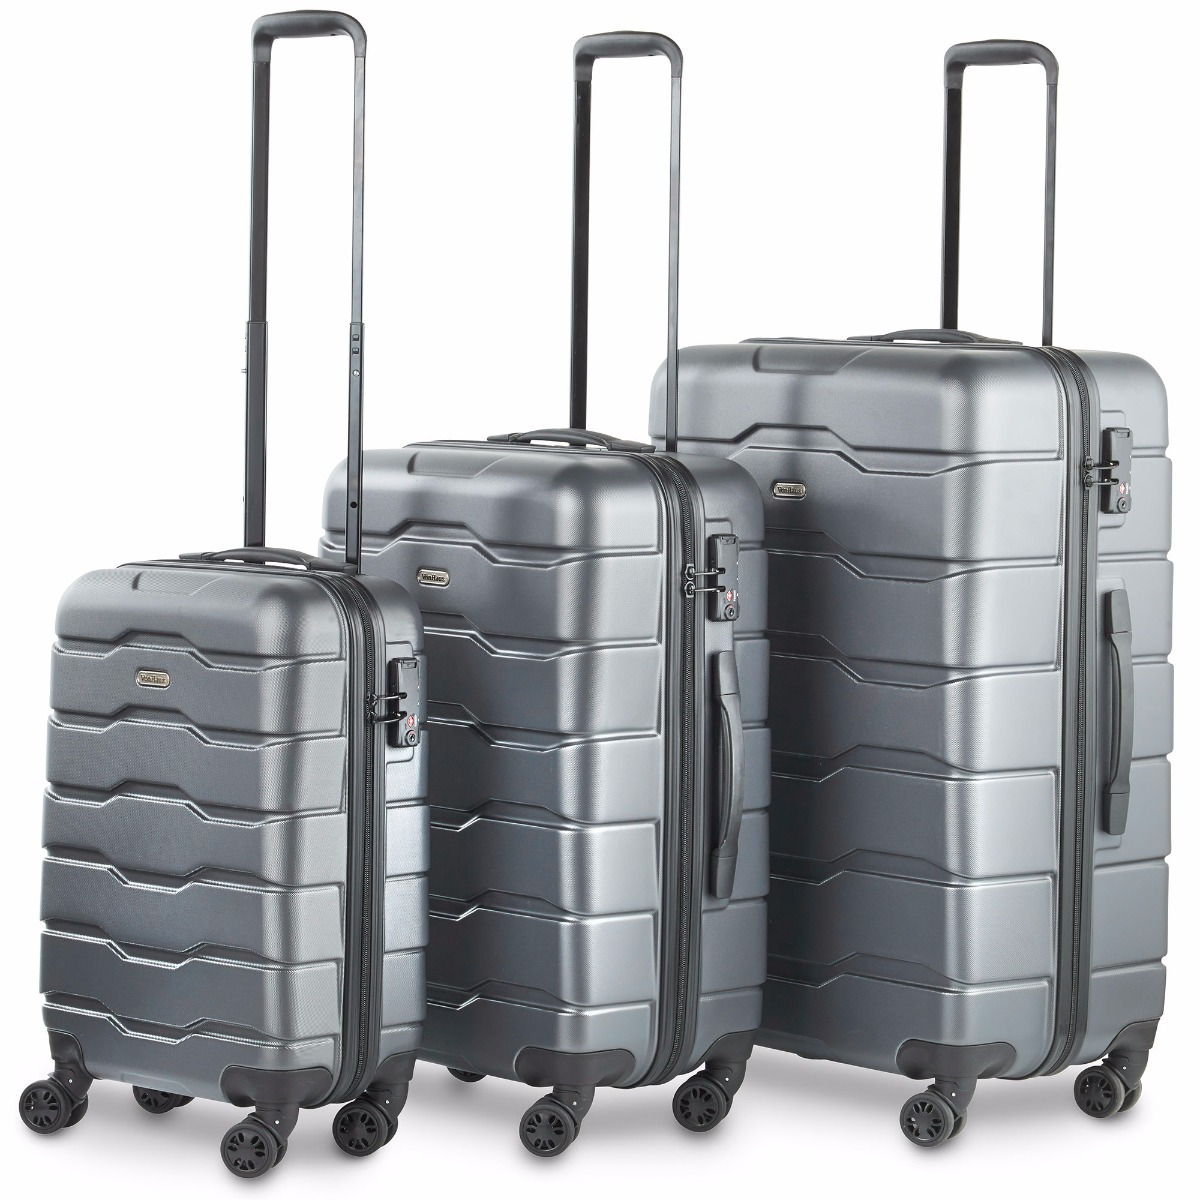 Lightweight Cabin Luggage Premium Gray 3 Piece Lightweight Travel Luggage Set Hard Shell Suitcase With 4 Spinner Wheels Tsa Integrated Lock Extendable Handle Small